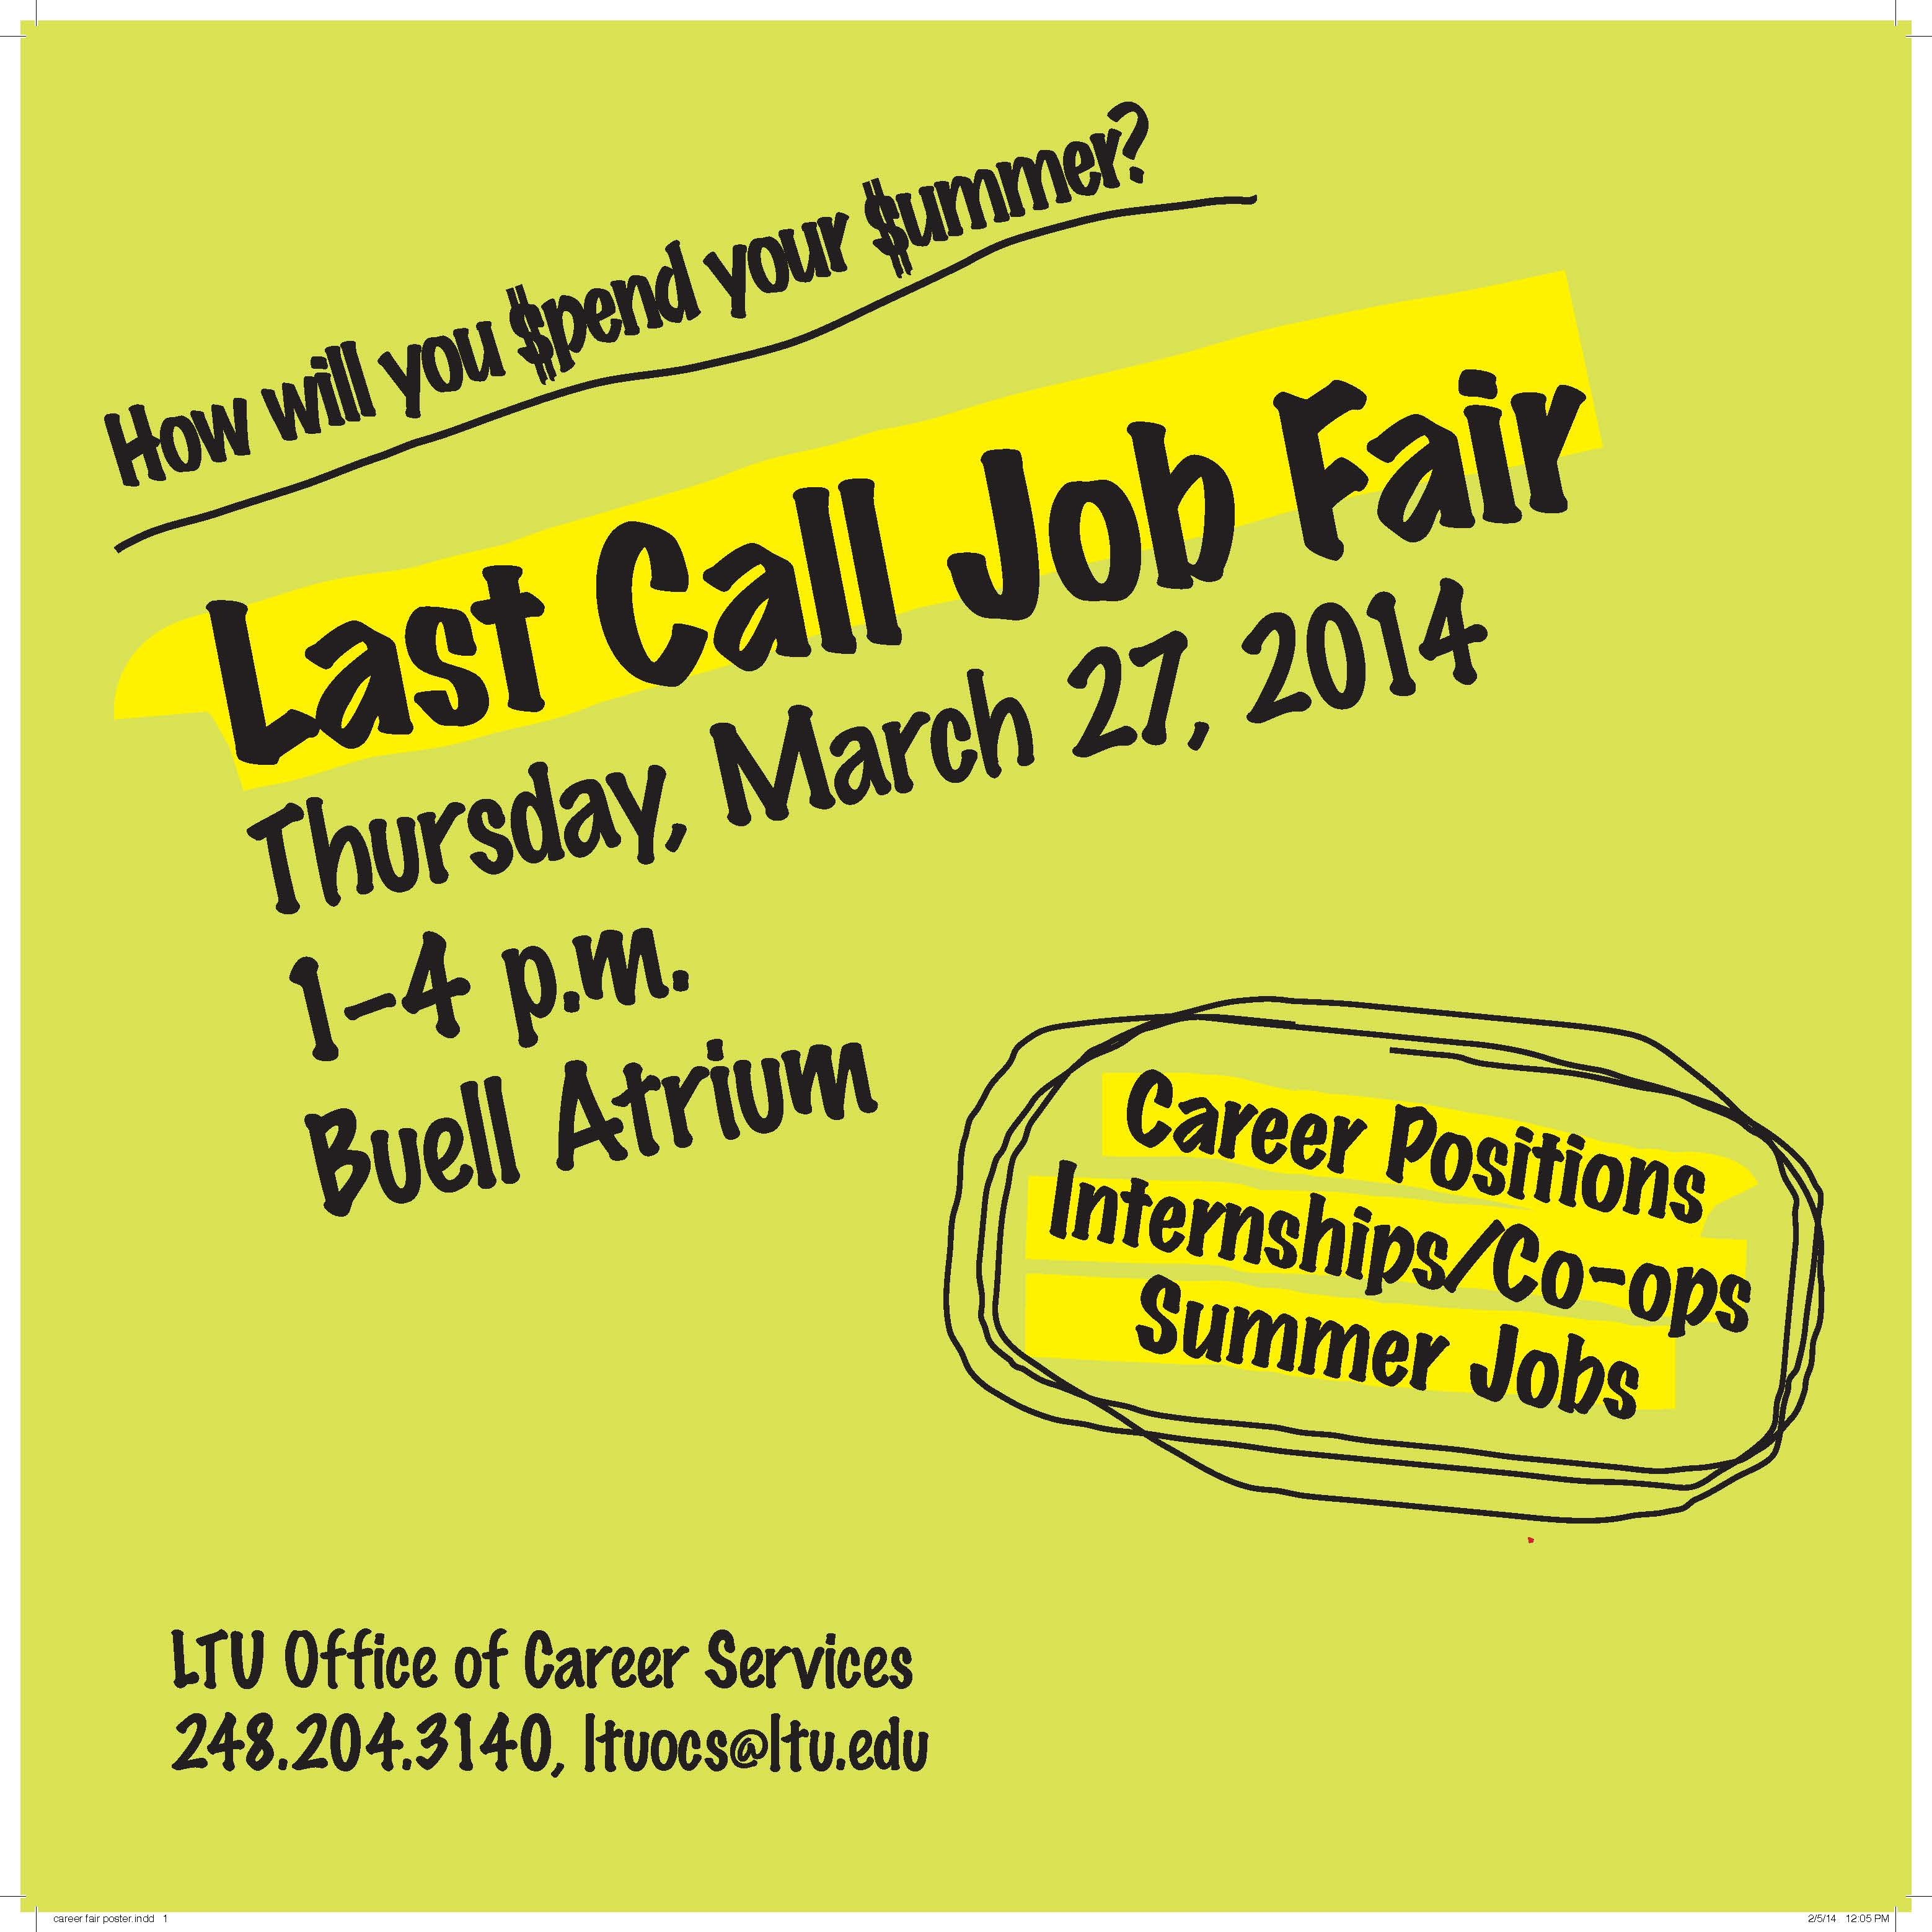 Last Call Job Fair